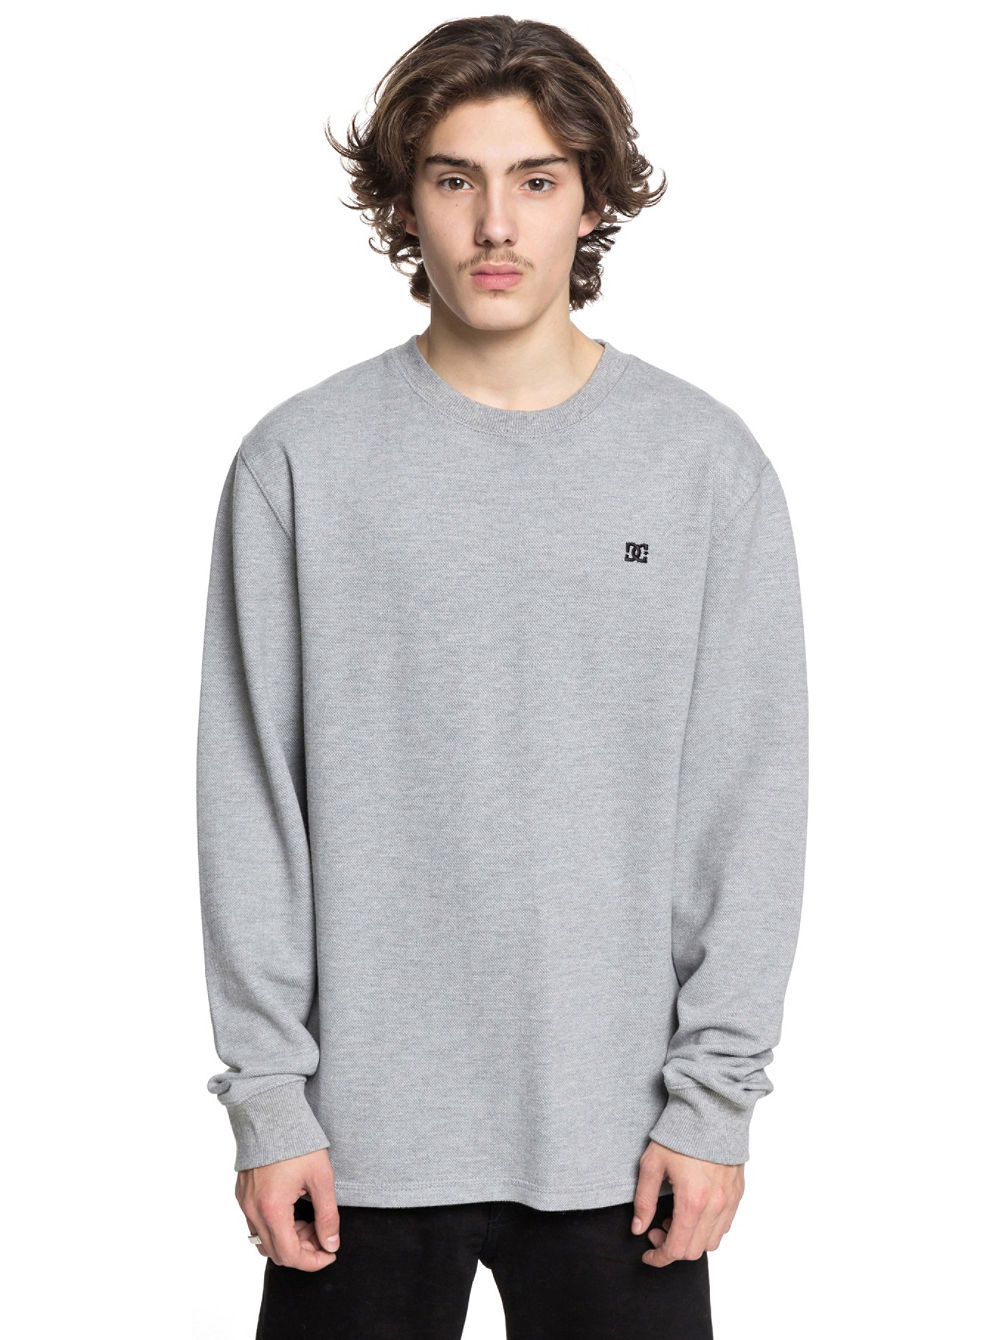 Rentnor Crew Sweater